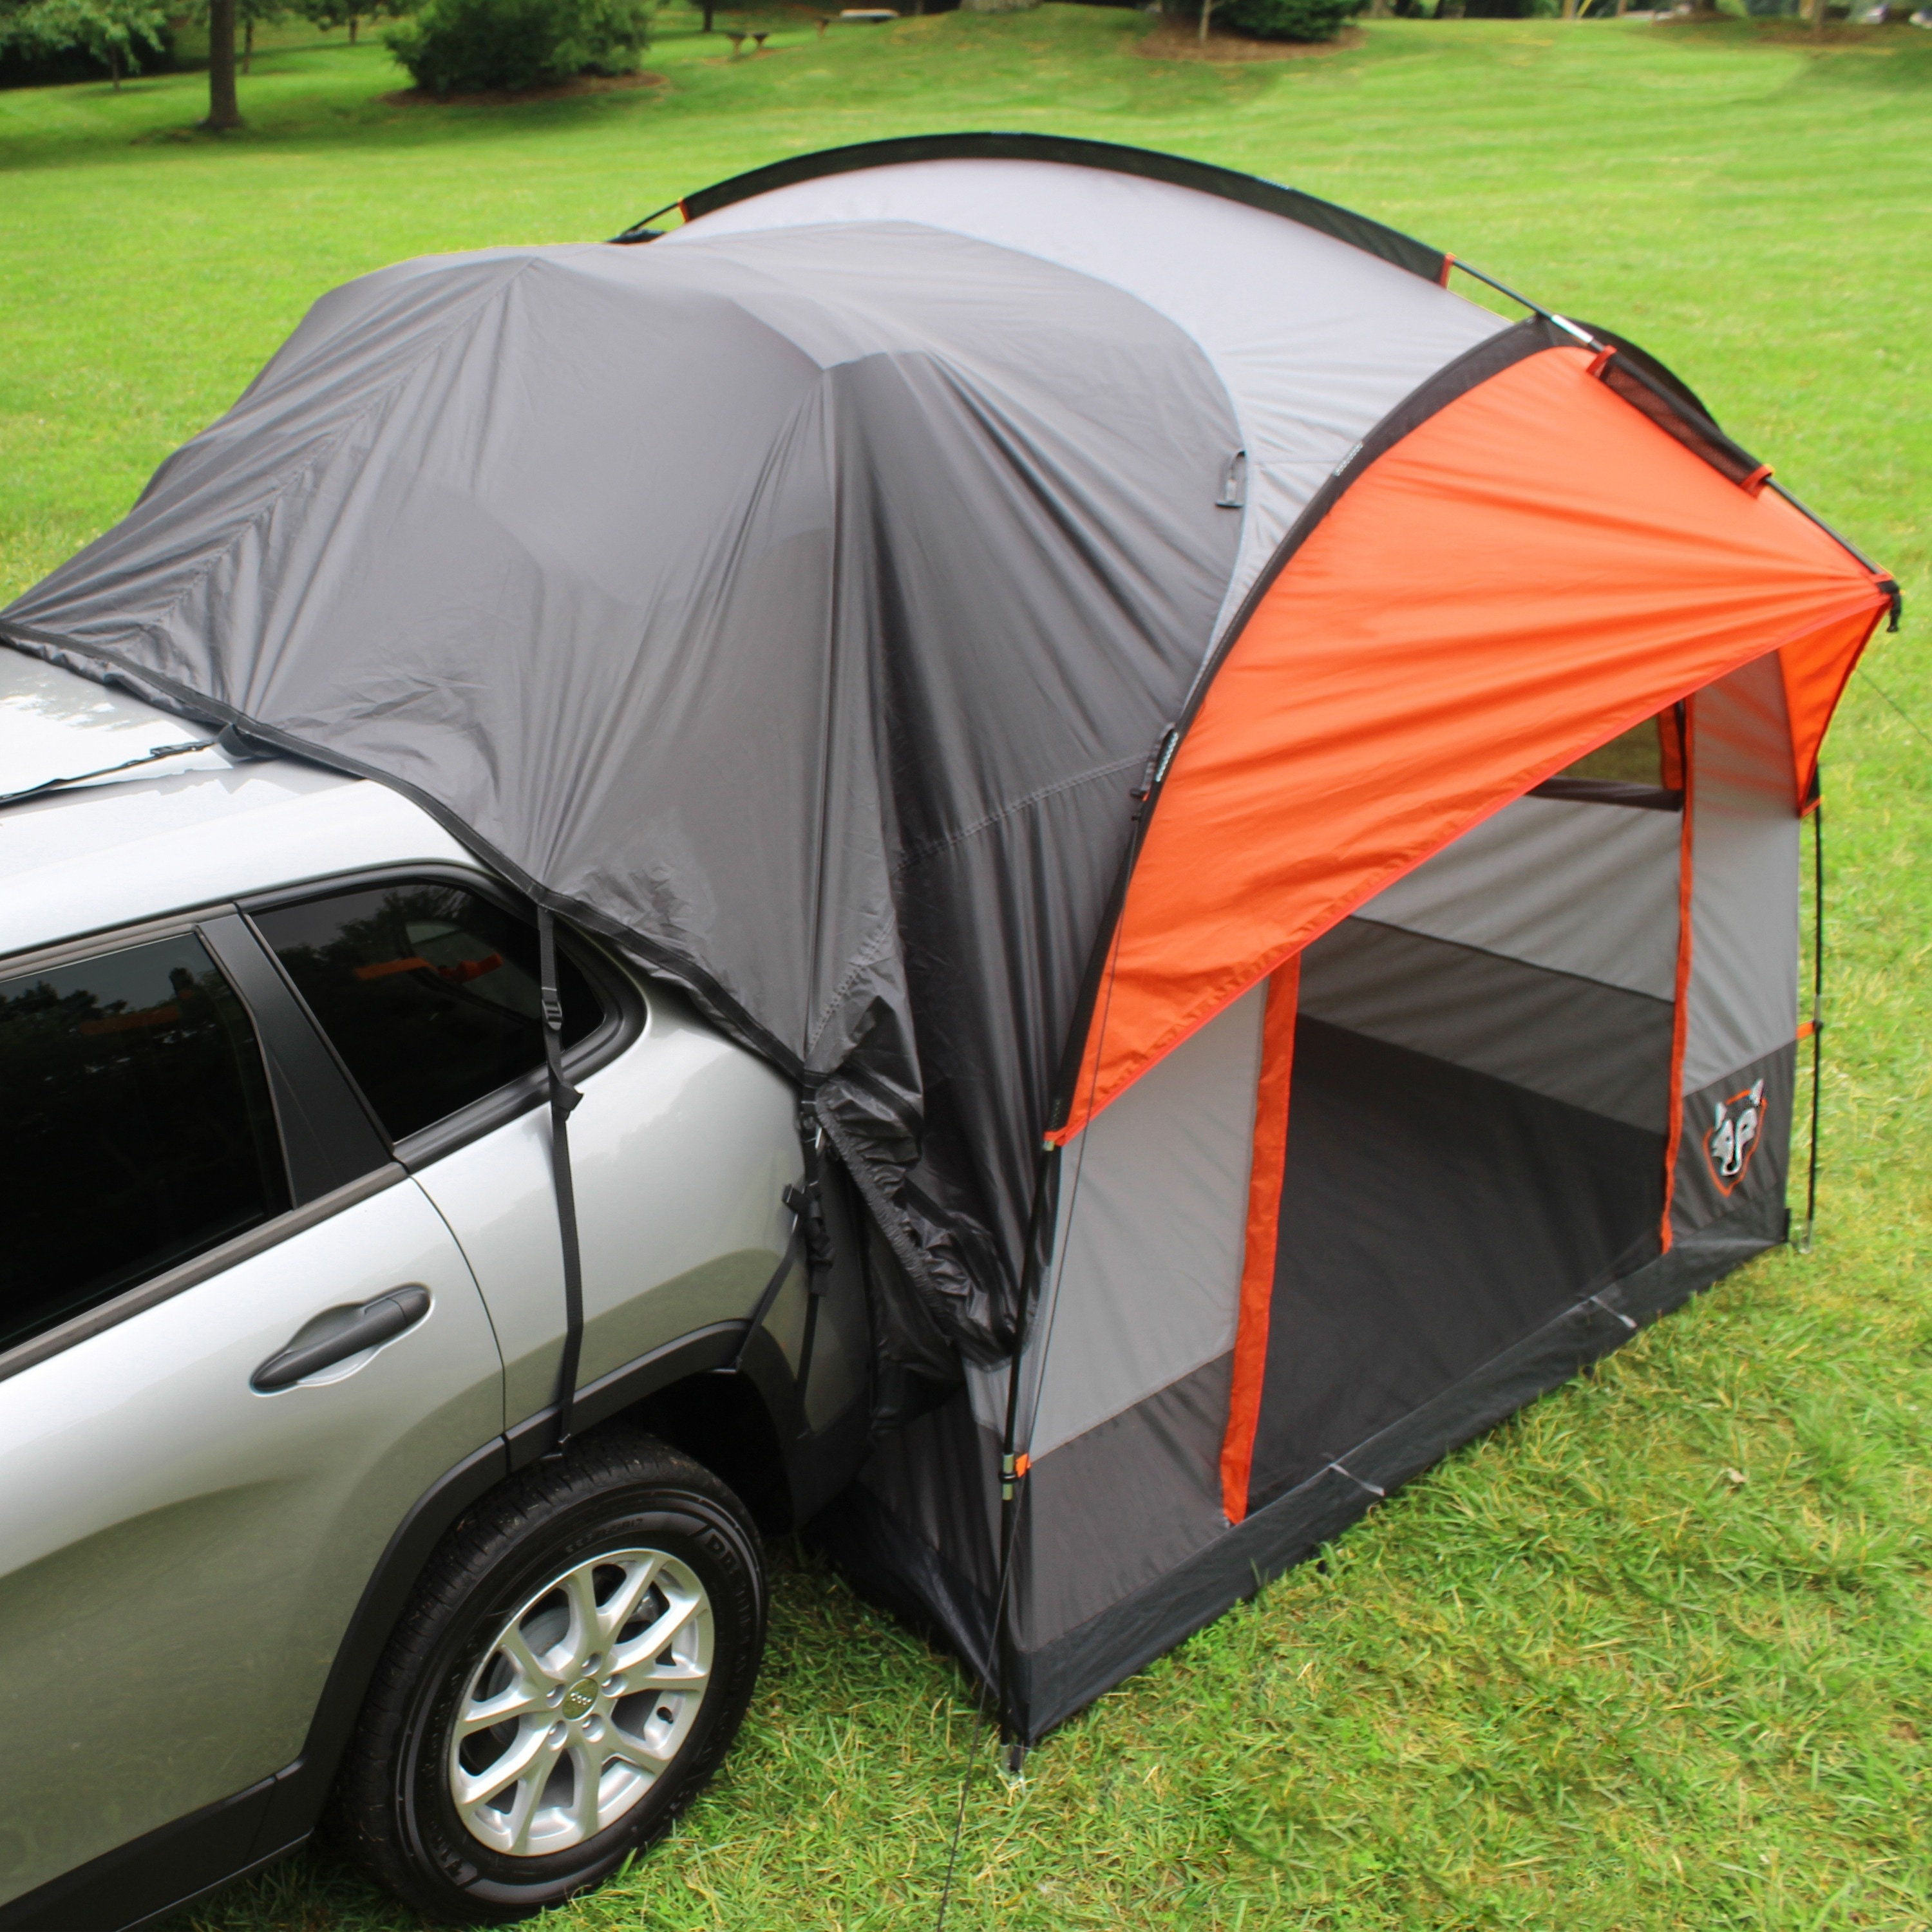 Rightline Gear SUV Tent - Free Shipping Today - Overstock.com - 16662652 & Rightline Gear SUV Tent - Free Shipping Today - Overstock.com ...